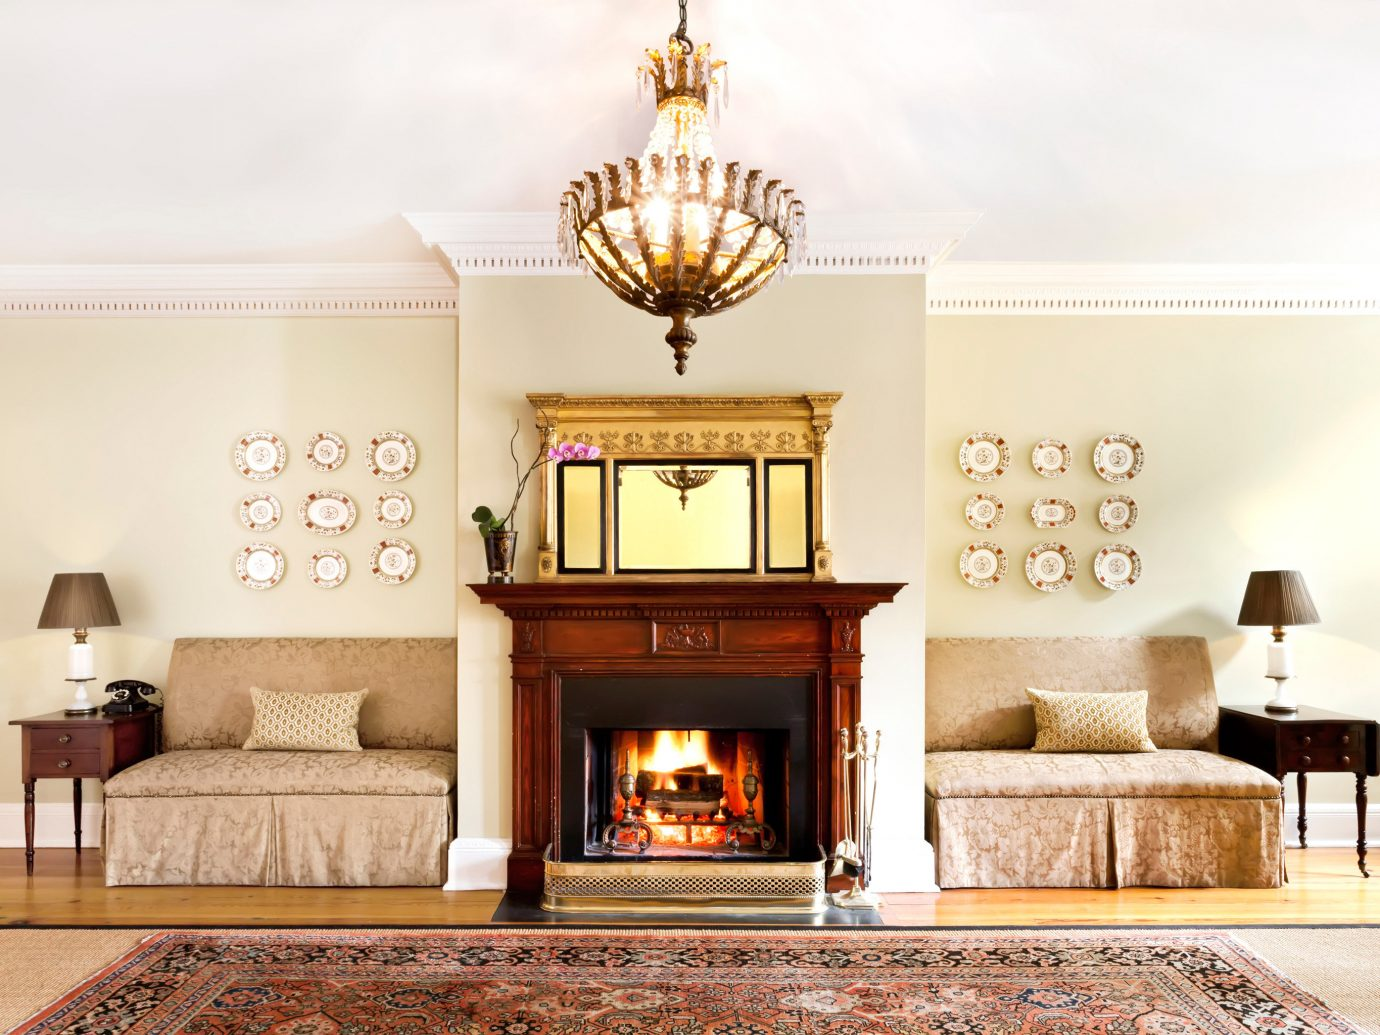 Elegant Fireplace Hotels Inn Lobby Lounge Trip Ideas indoor Living wall floor fire room living room hearth home hardwood furniture interior design lighting wood ceiling dining room Design wood flooring estate decorated